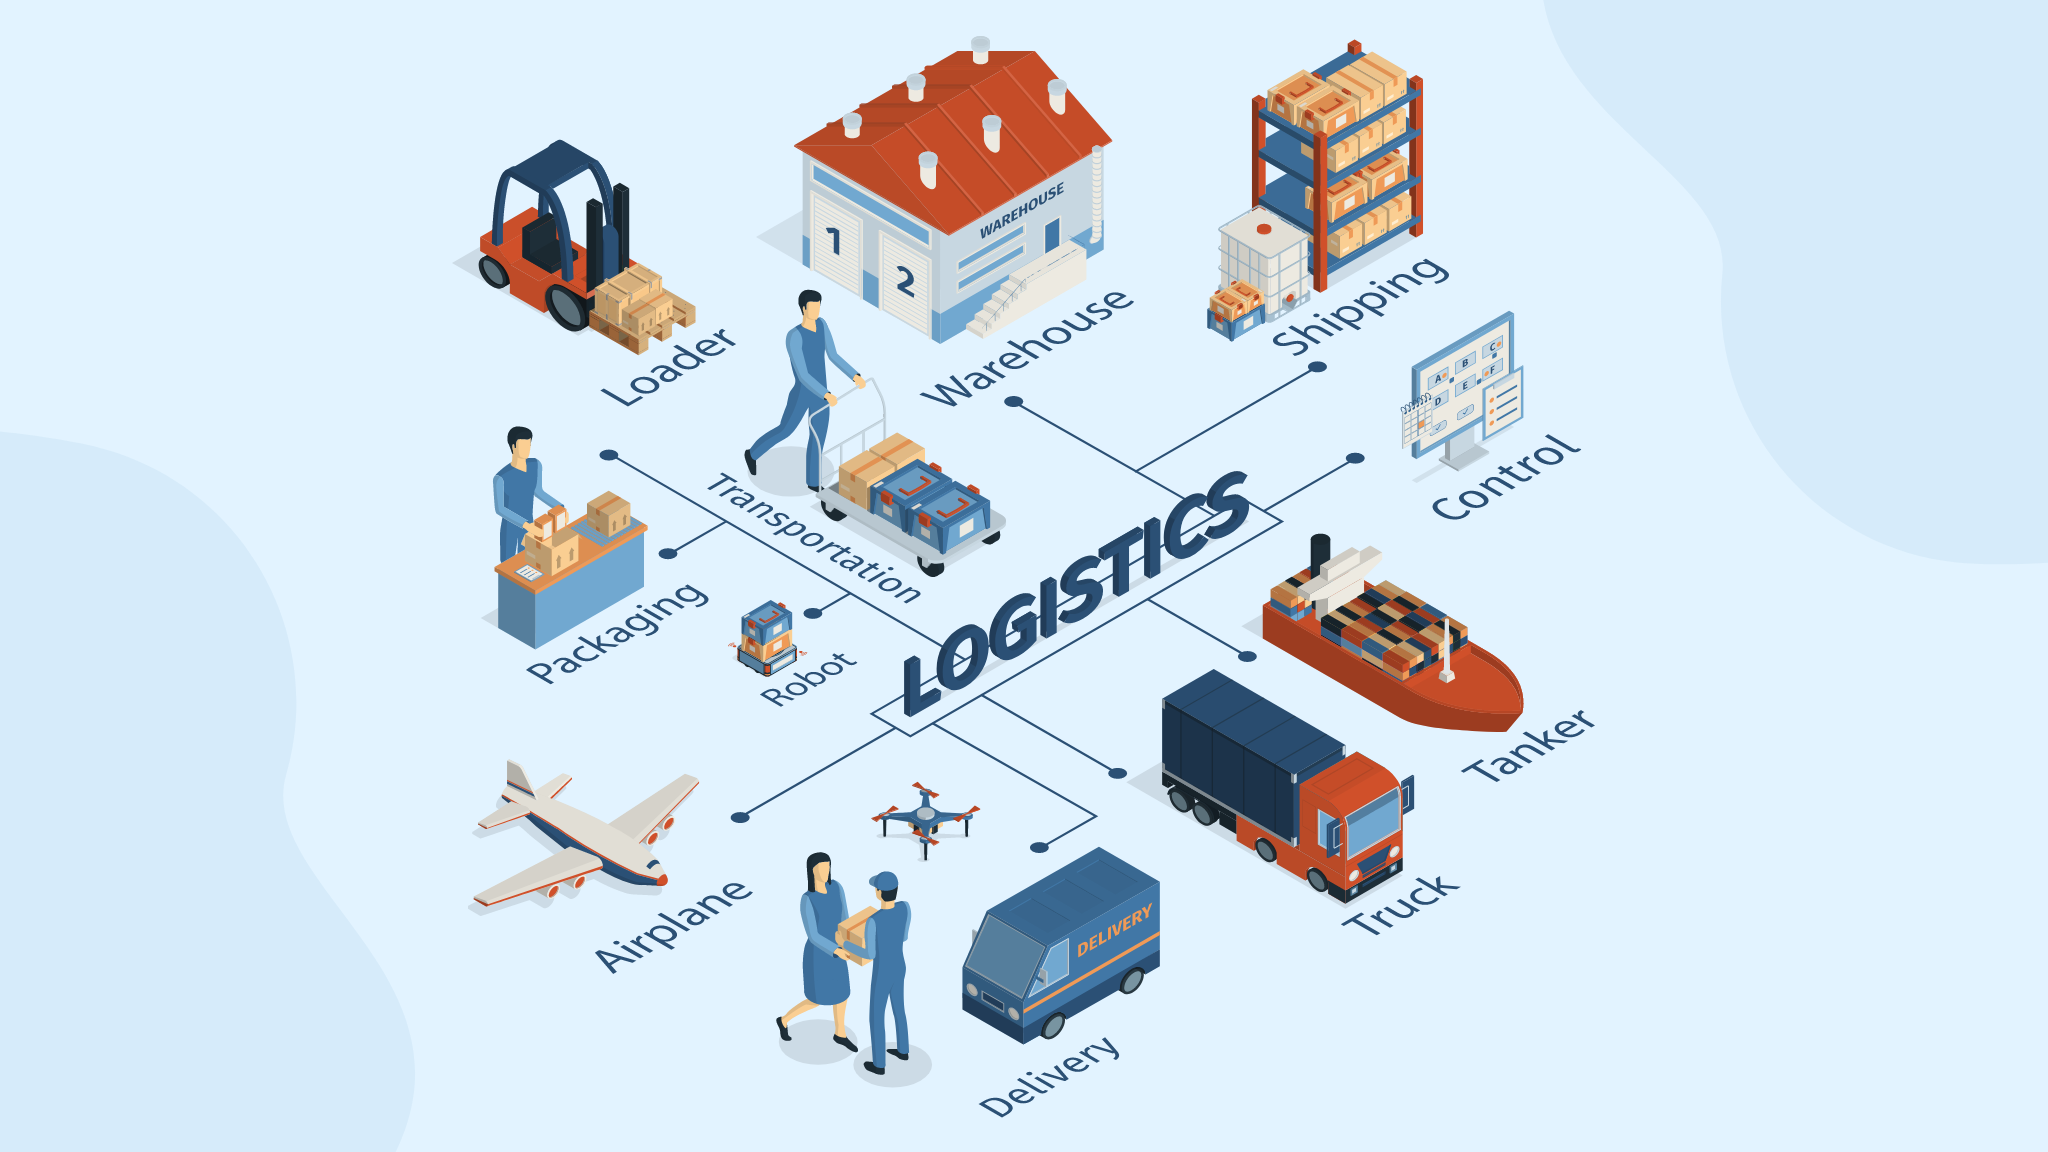 7 Must-Haves to Consider While Developing Apps for Logistics